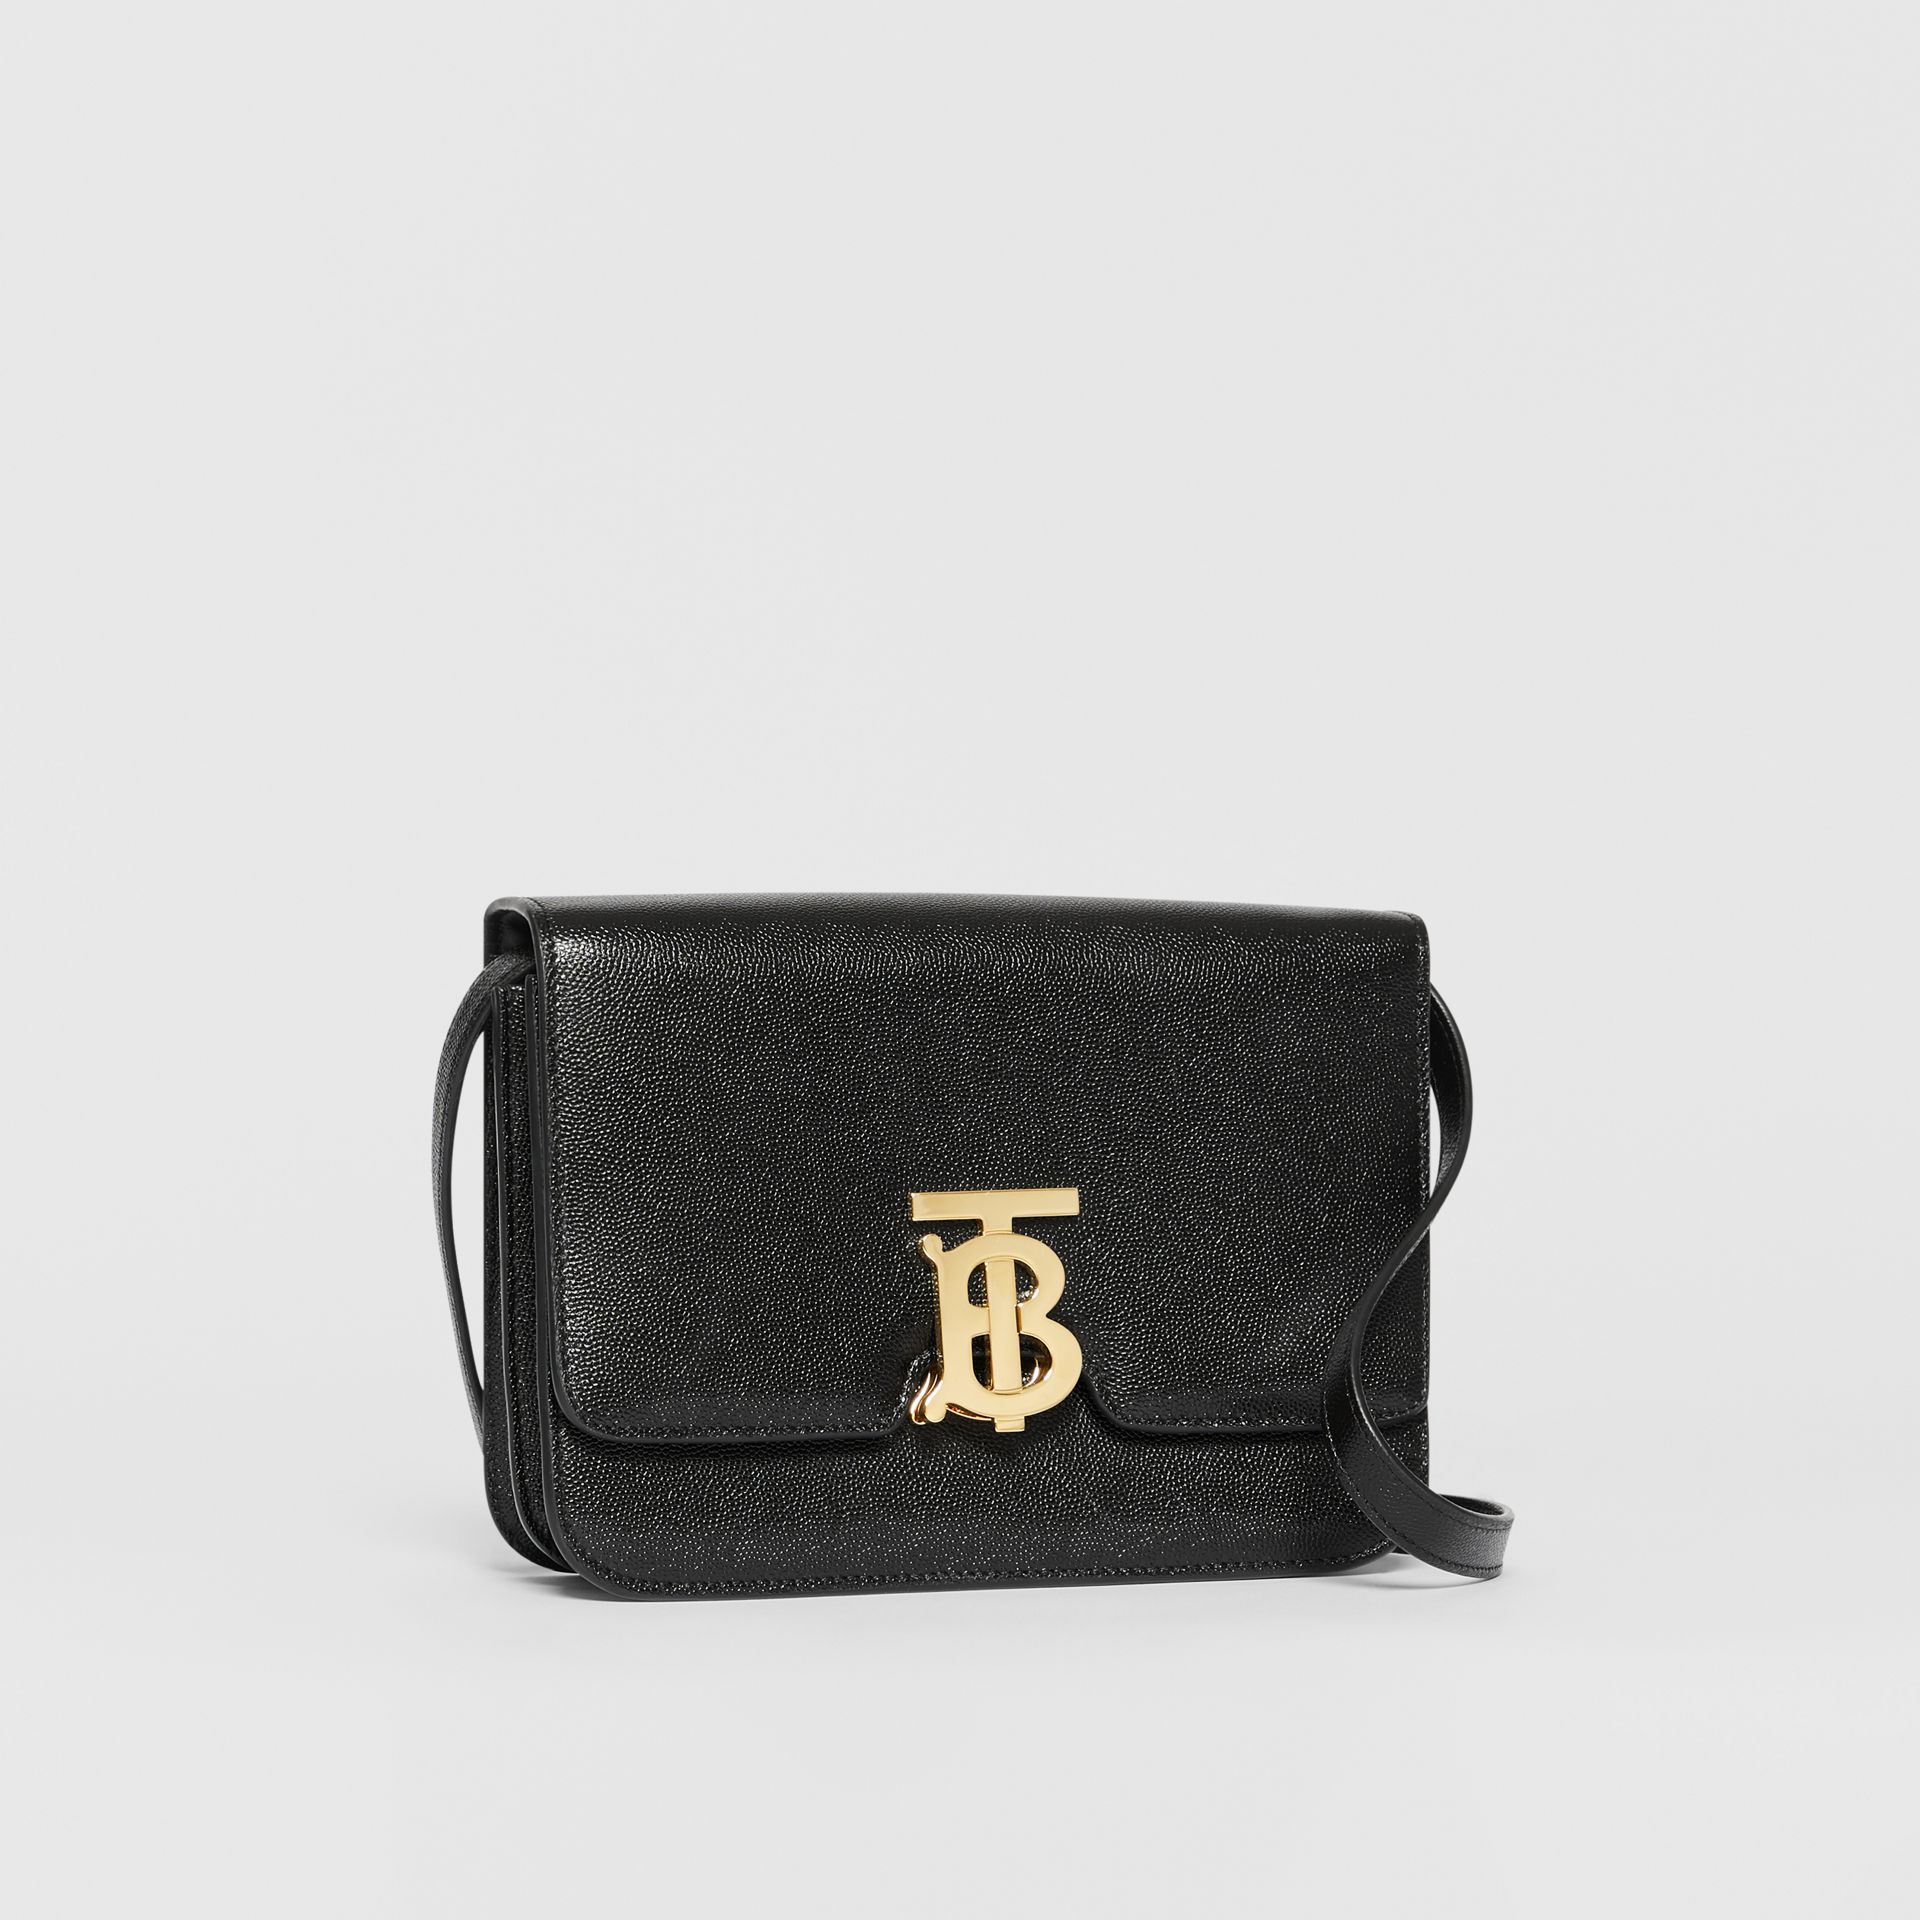 Small Grainy Leather TB Bag in Black - Women | Burberry Canada - gallery image 6